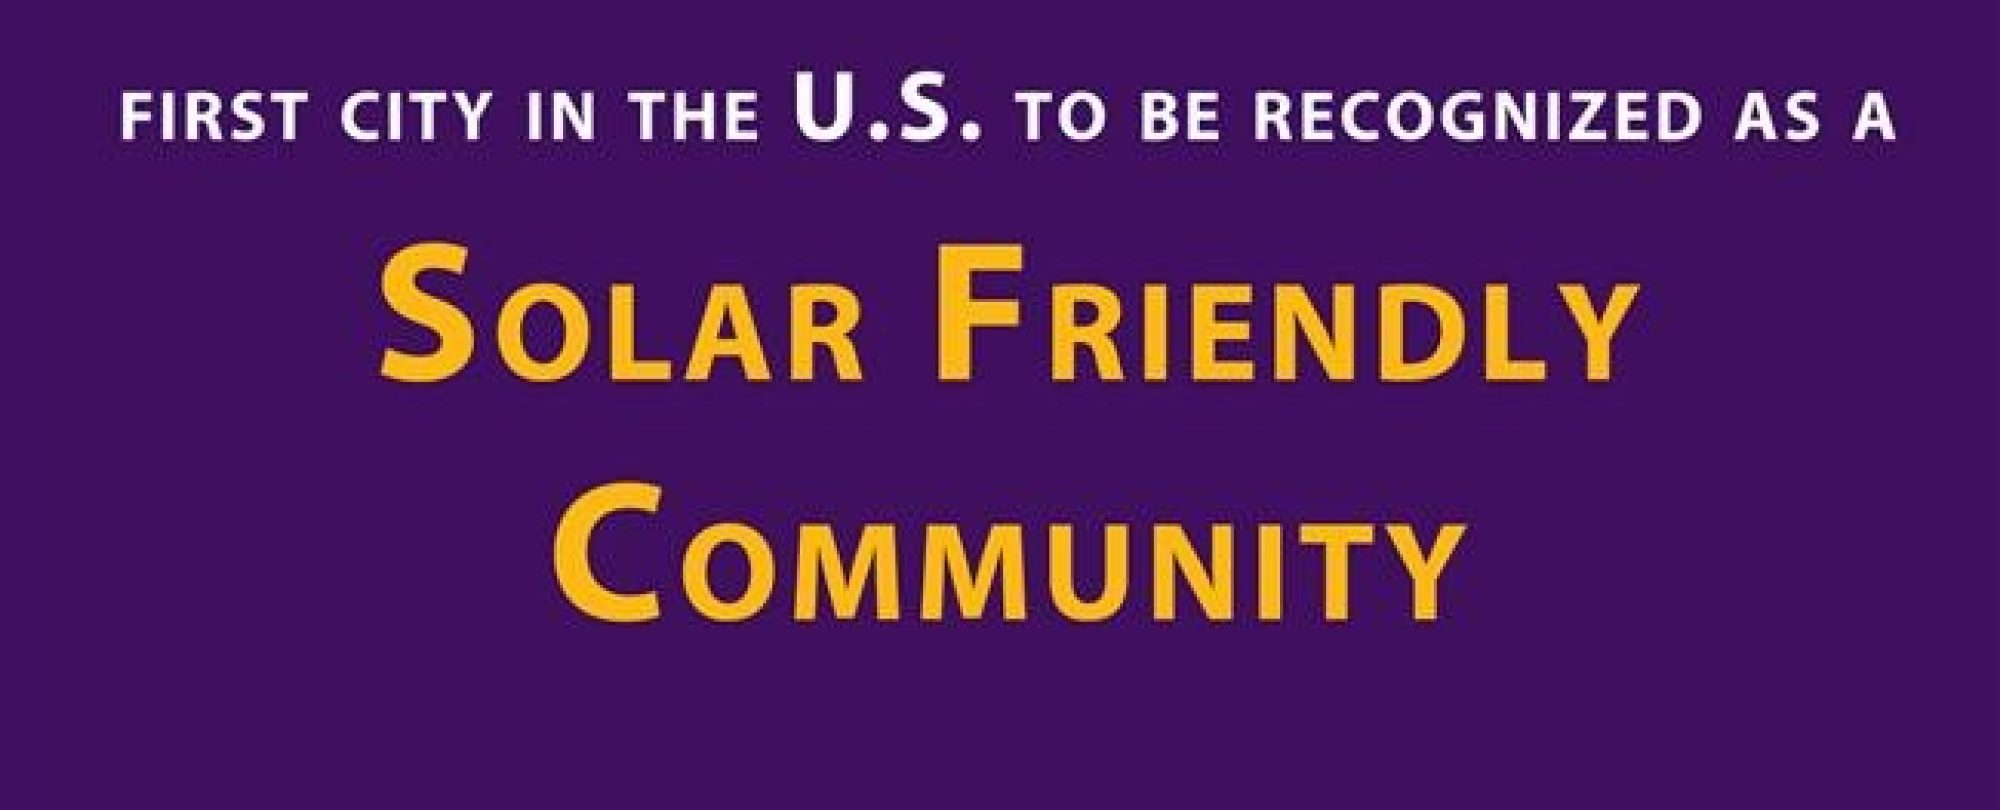 First in the U.S. to be recognized as a solar friendly community